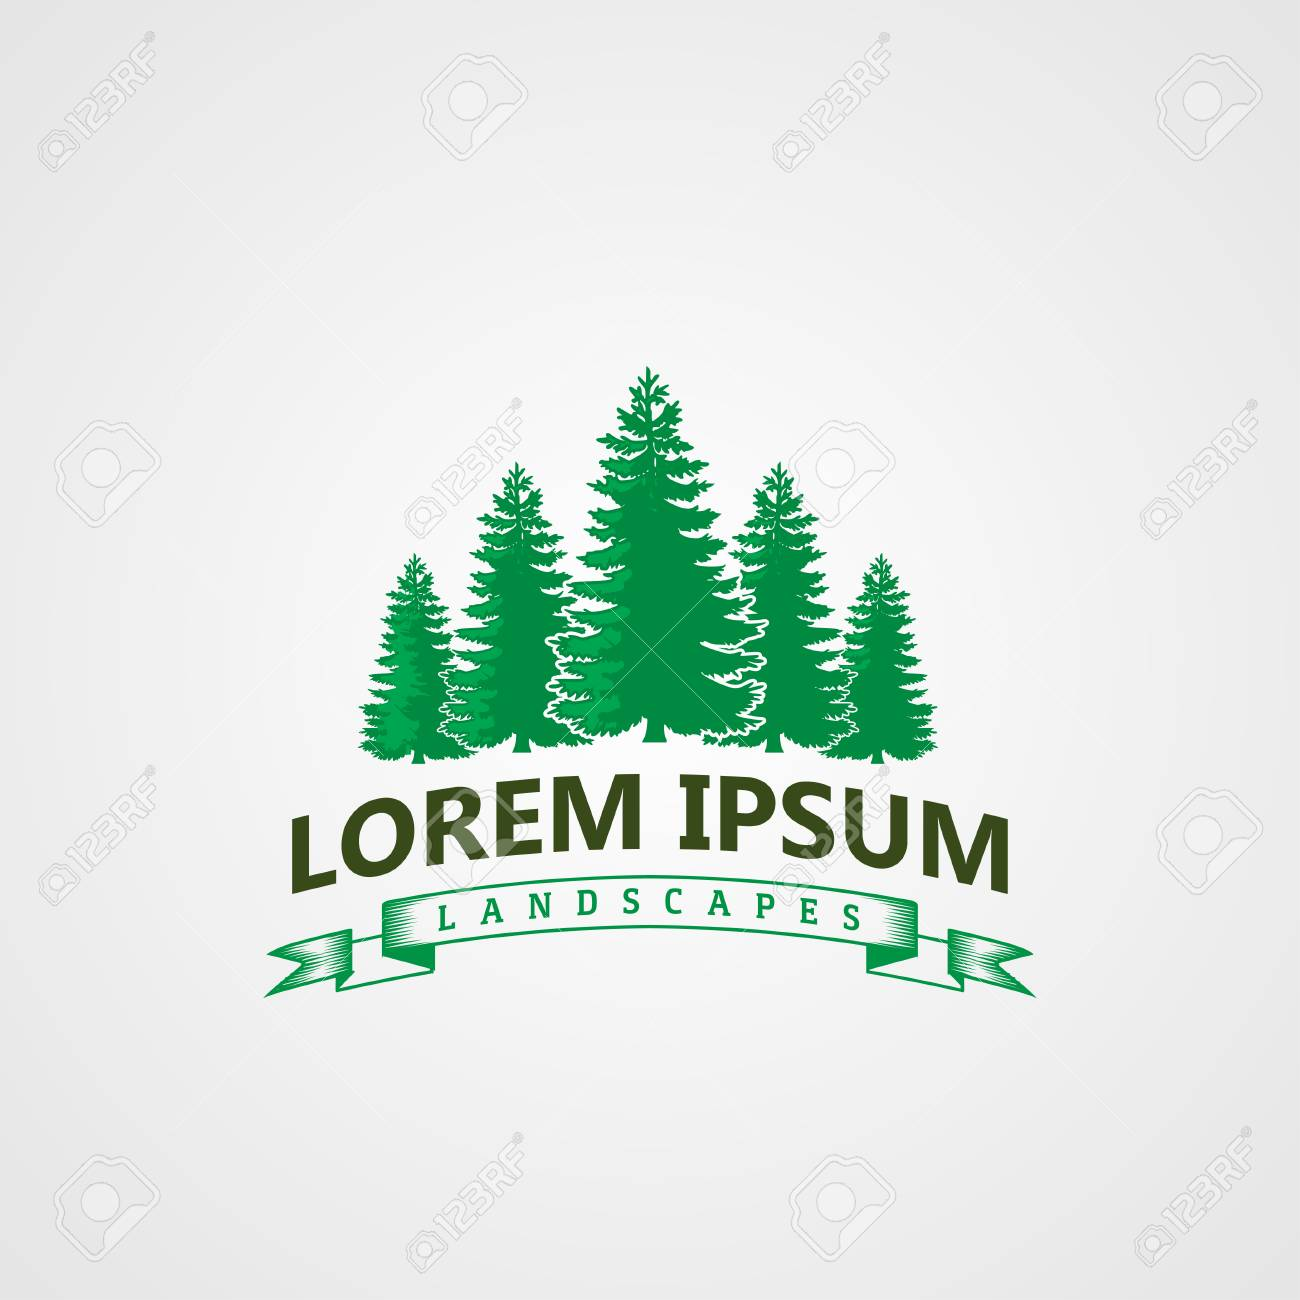 Creative Landscape Pines Tree Logo Concept Design Templates Stock Vector